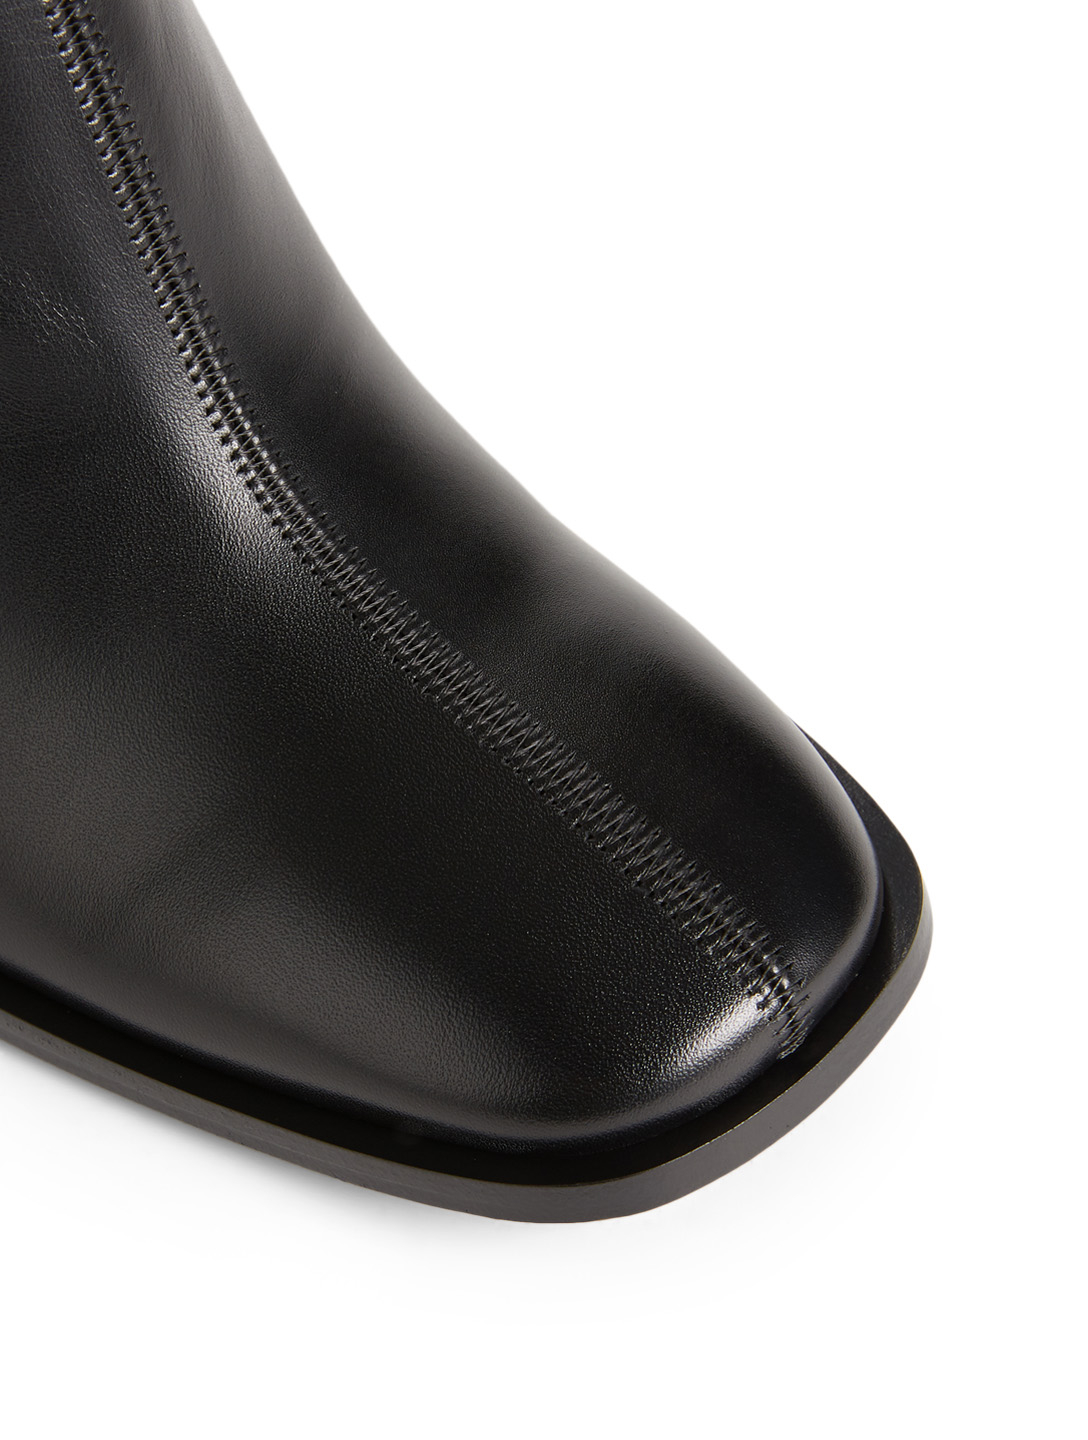 ACNE STUDIOS Bethany Leather Ankle Boots Women's Black